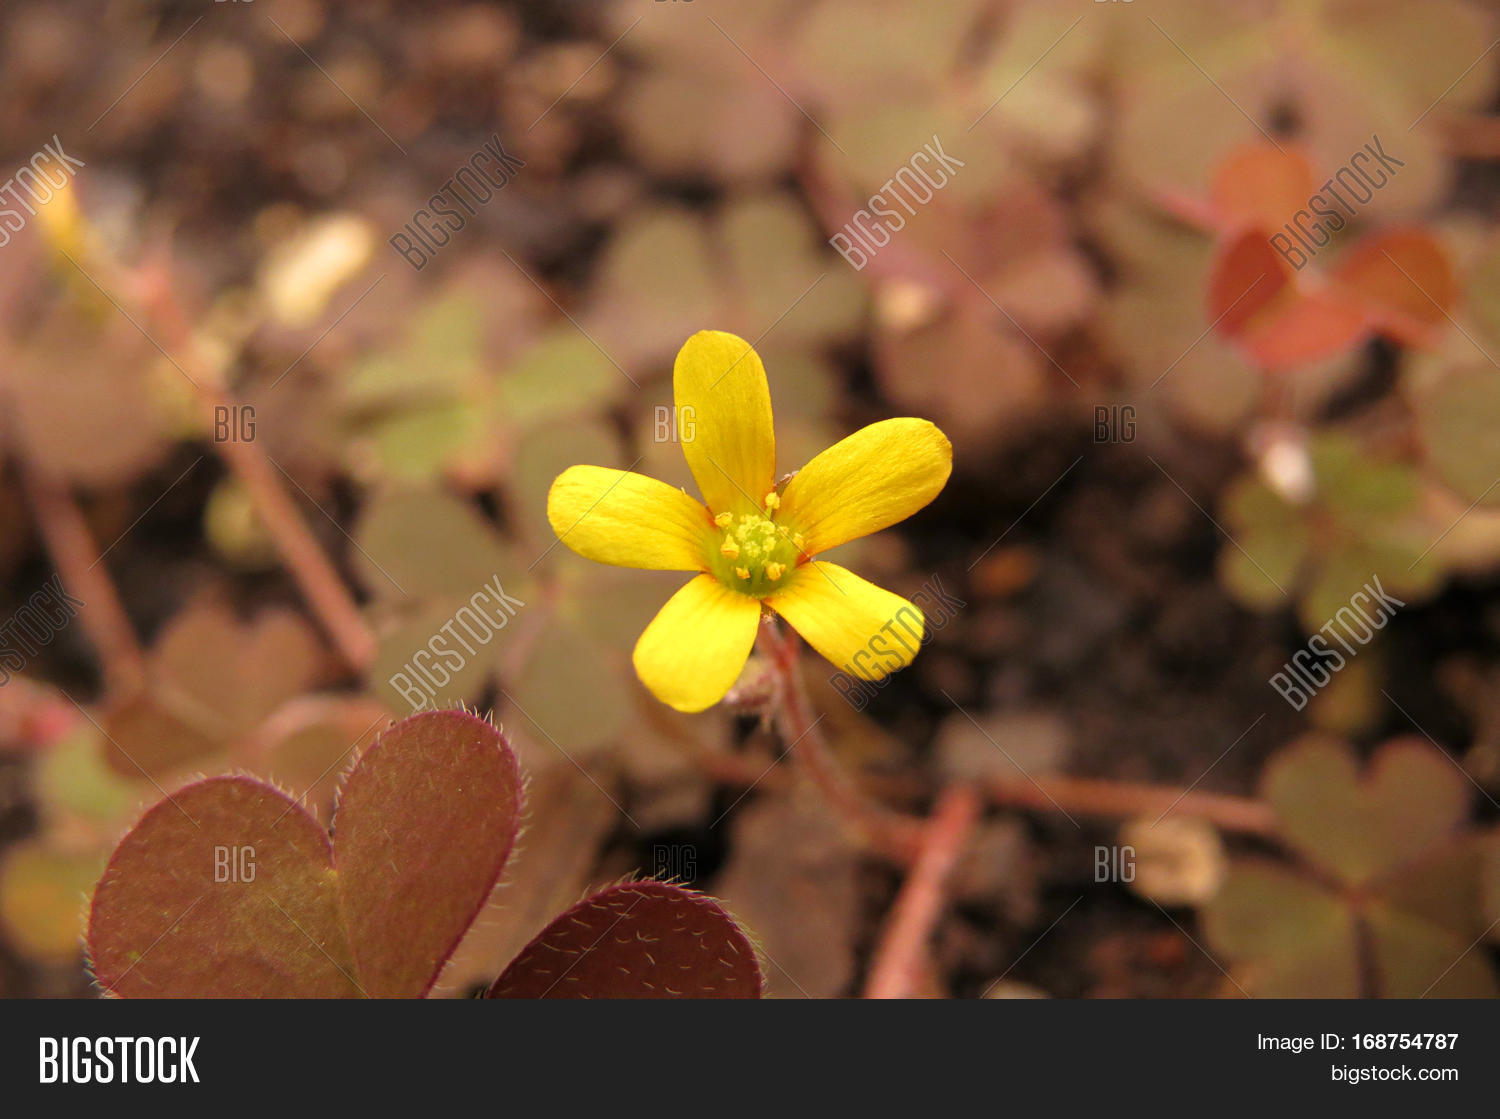 Yellow Clover Flower Image Photo Free Trial Bigstock